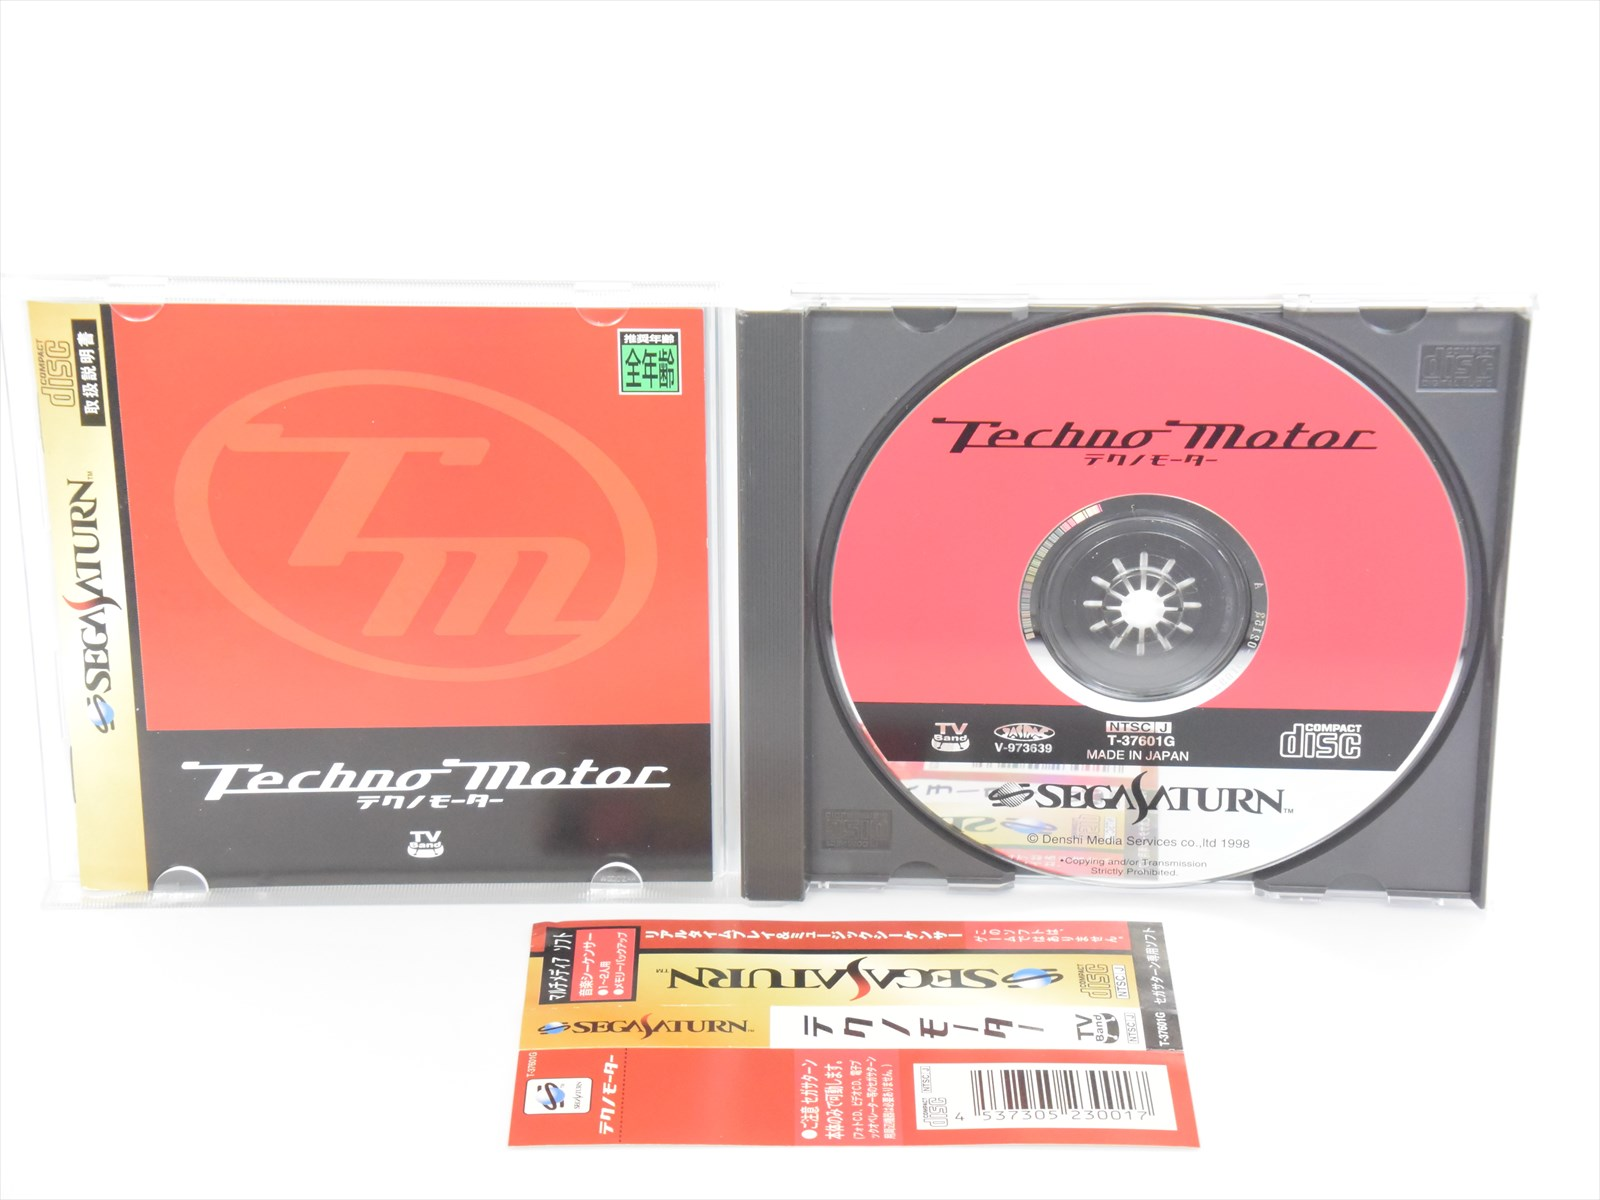 Details about Sega Saturn TECHNO MOTOR with spine * Japan Game ss